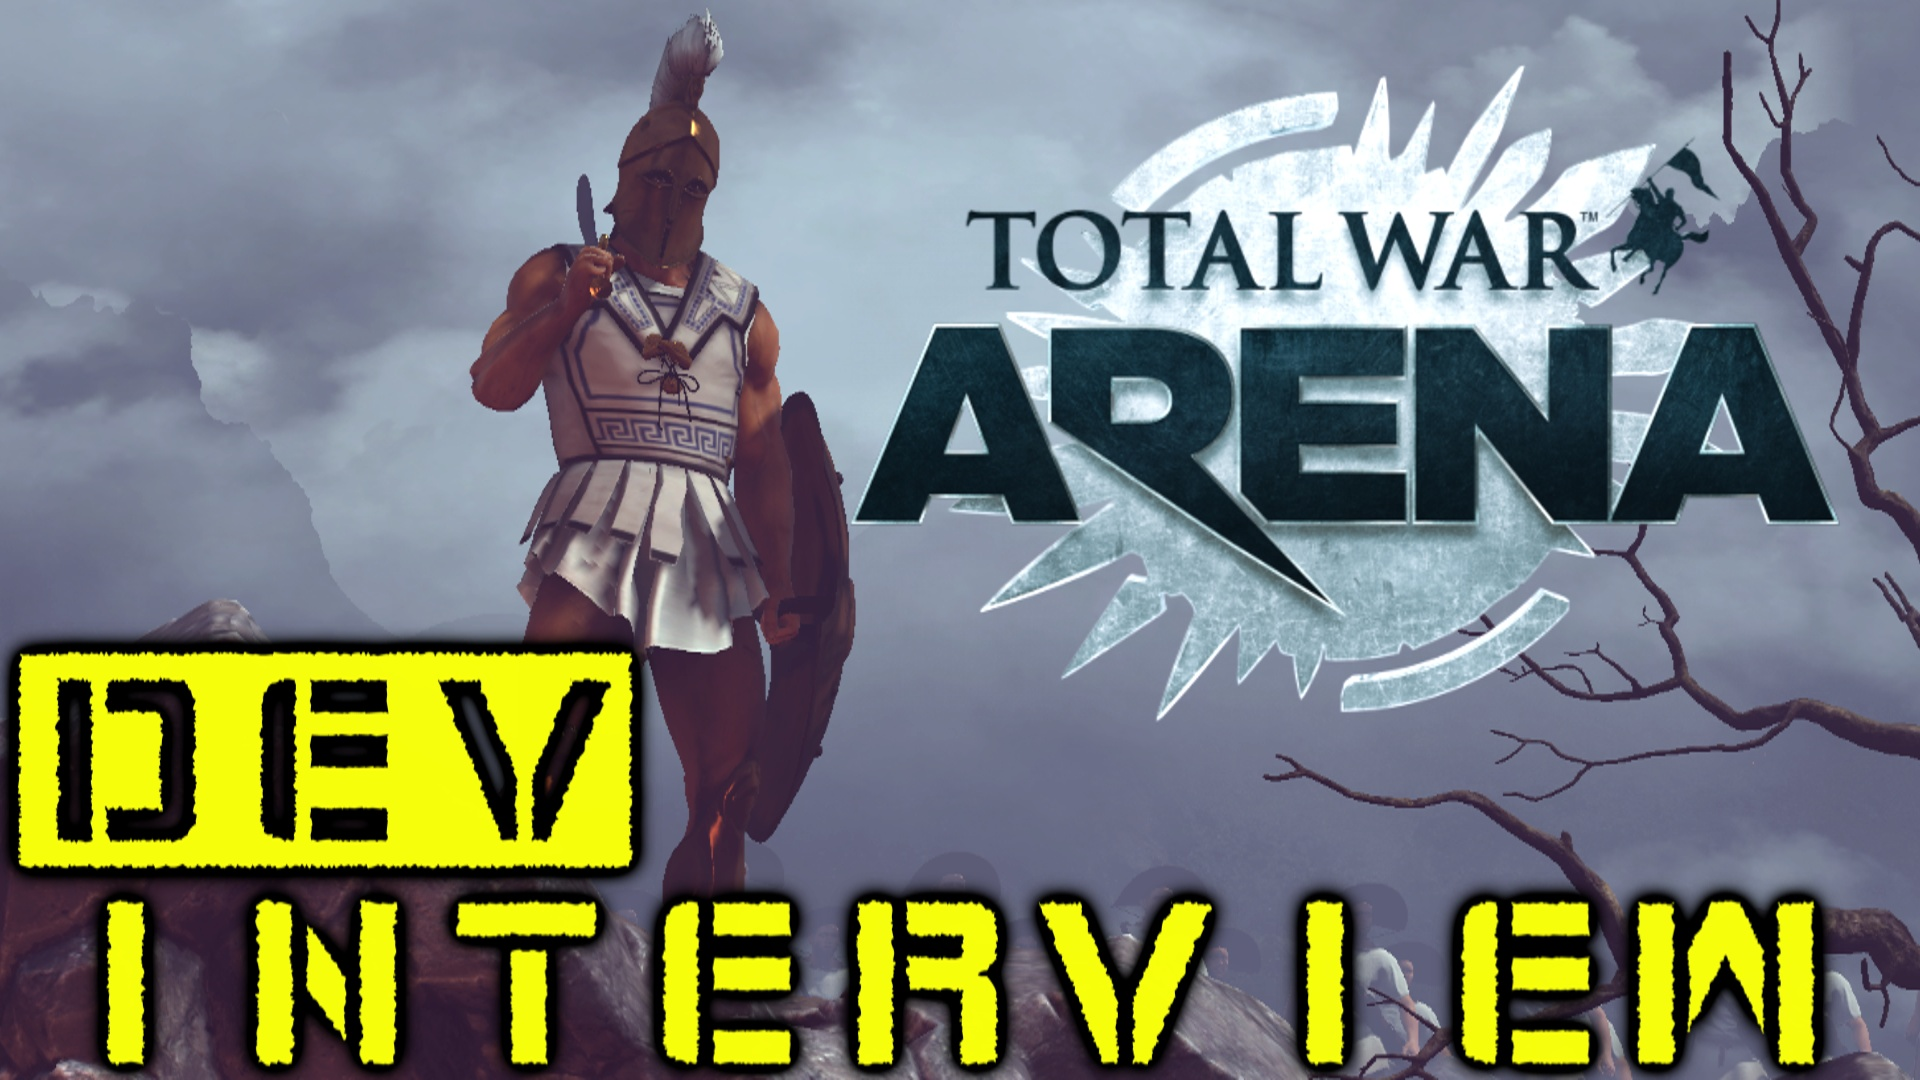 Total War: Arena - Dev Interview